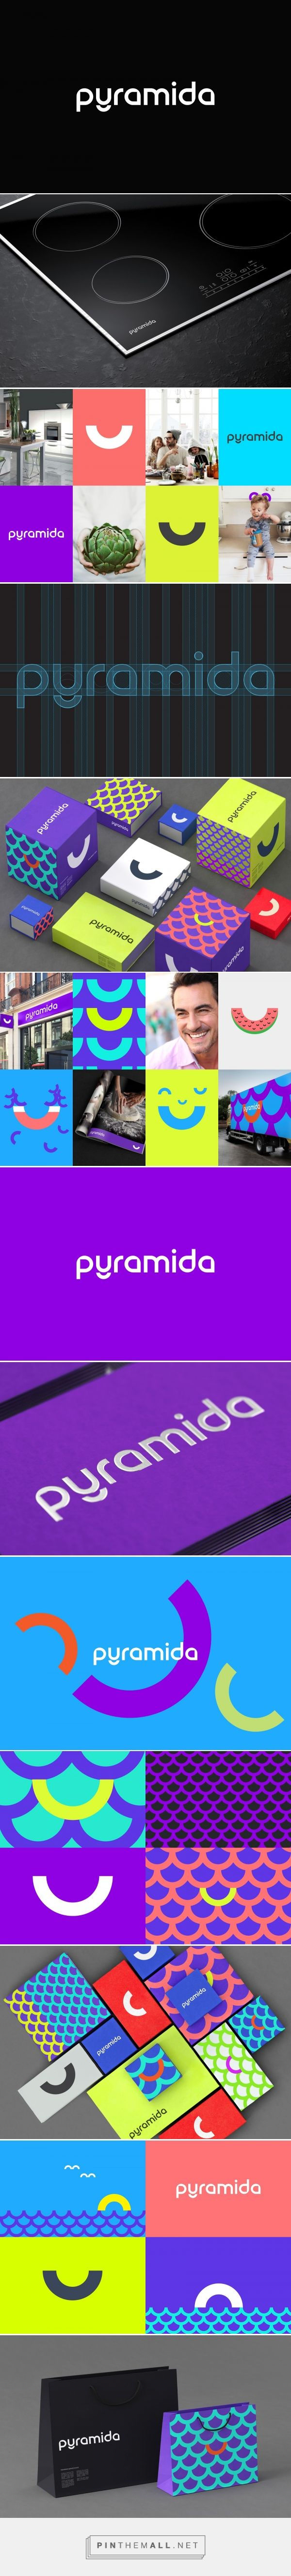 Pyramida kitchen appliances packaging design by Reynolds and Reyner - http://www.packagingoftheworld.com/2017/01/pyramida.html